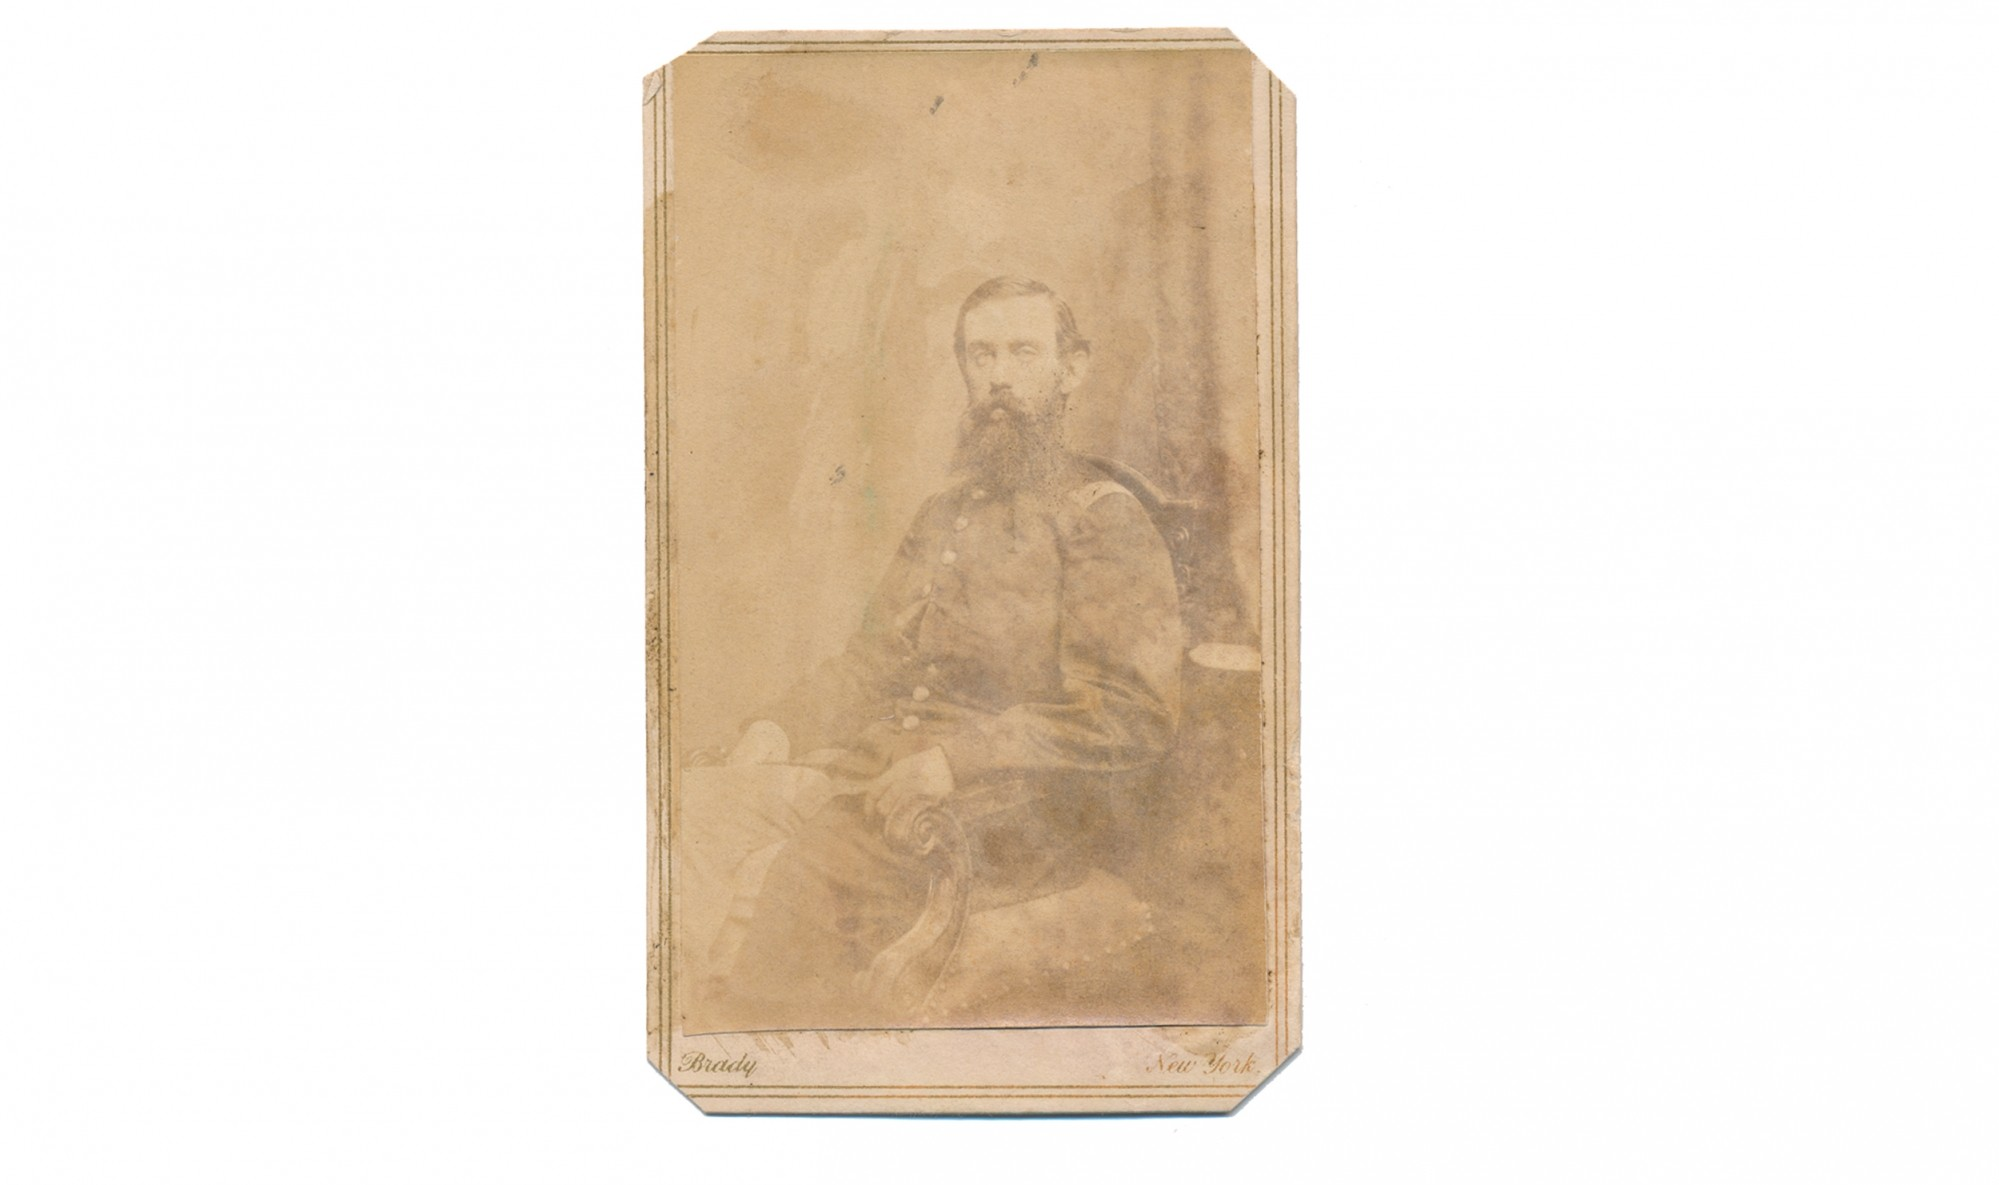 CDV OF UNION CAPTAIN JOHN McENTEE (MACENTEE), 80TH NEW YORK INFANTRY